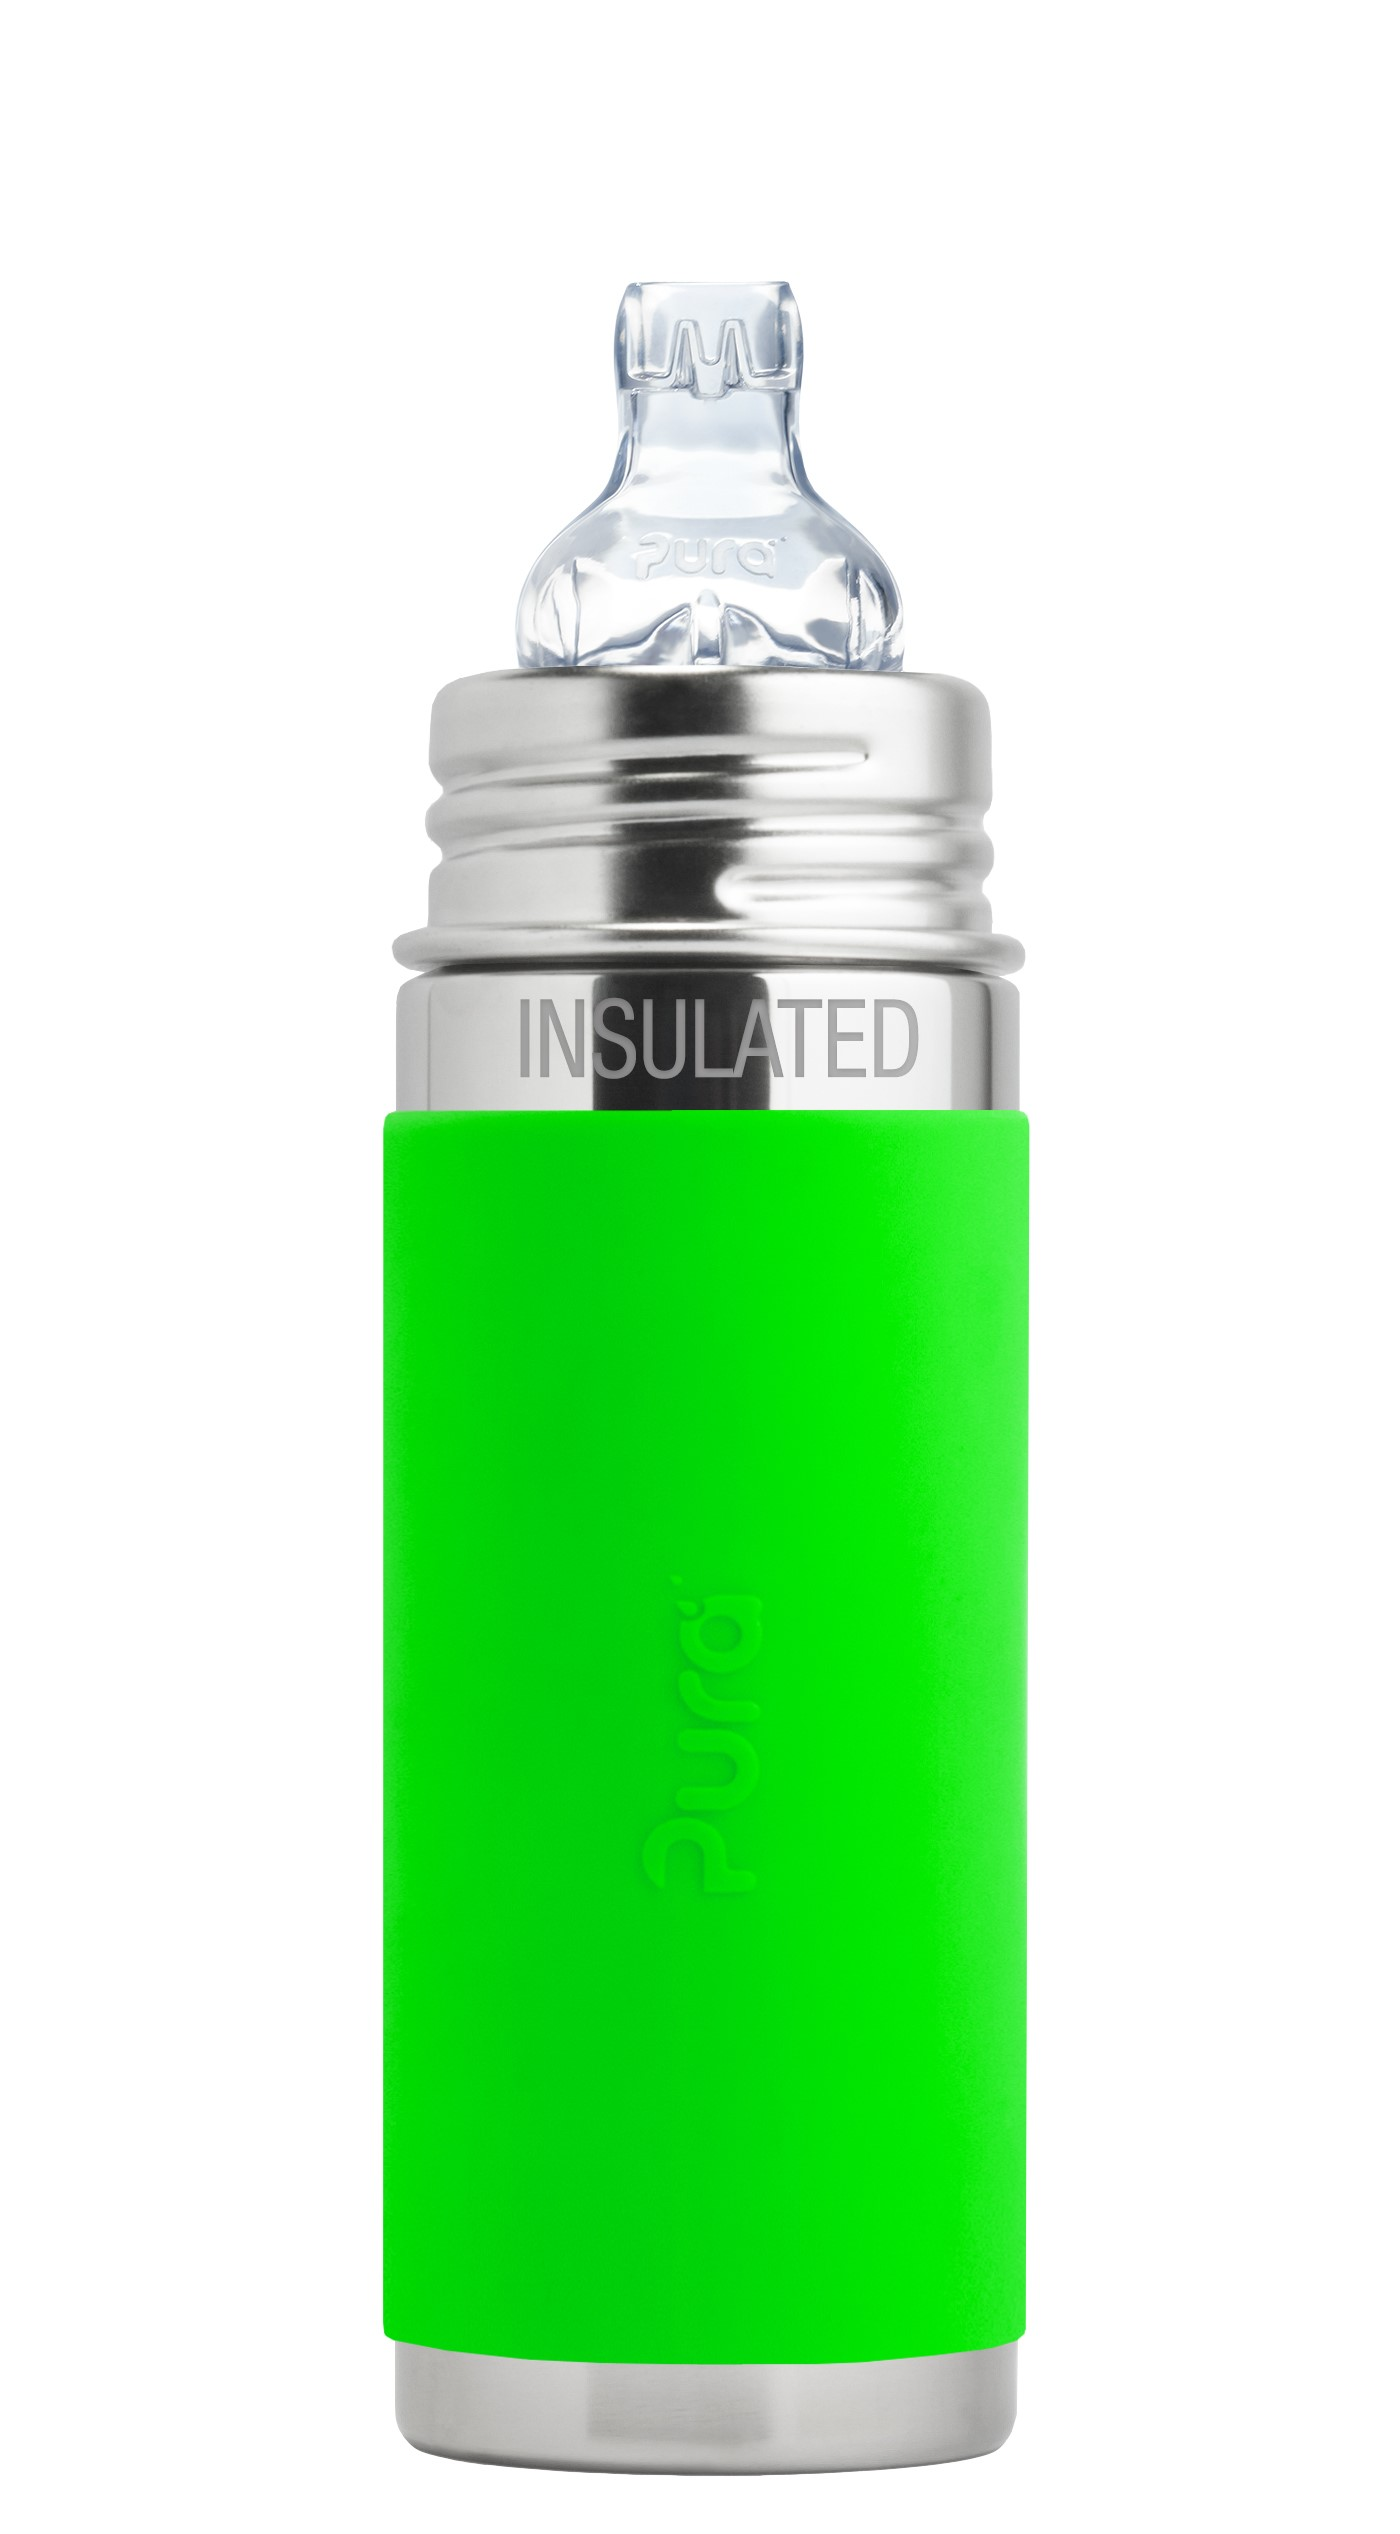 Pura Kiki 9 oz   260 ml Stainless Steel Insulated Sippy Cup with Silicone XL Sipper & Sleeve, Green (Plastic... by Pura Stainless